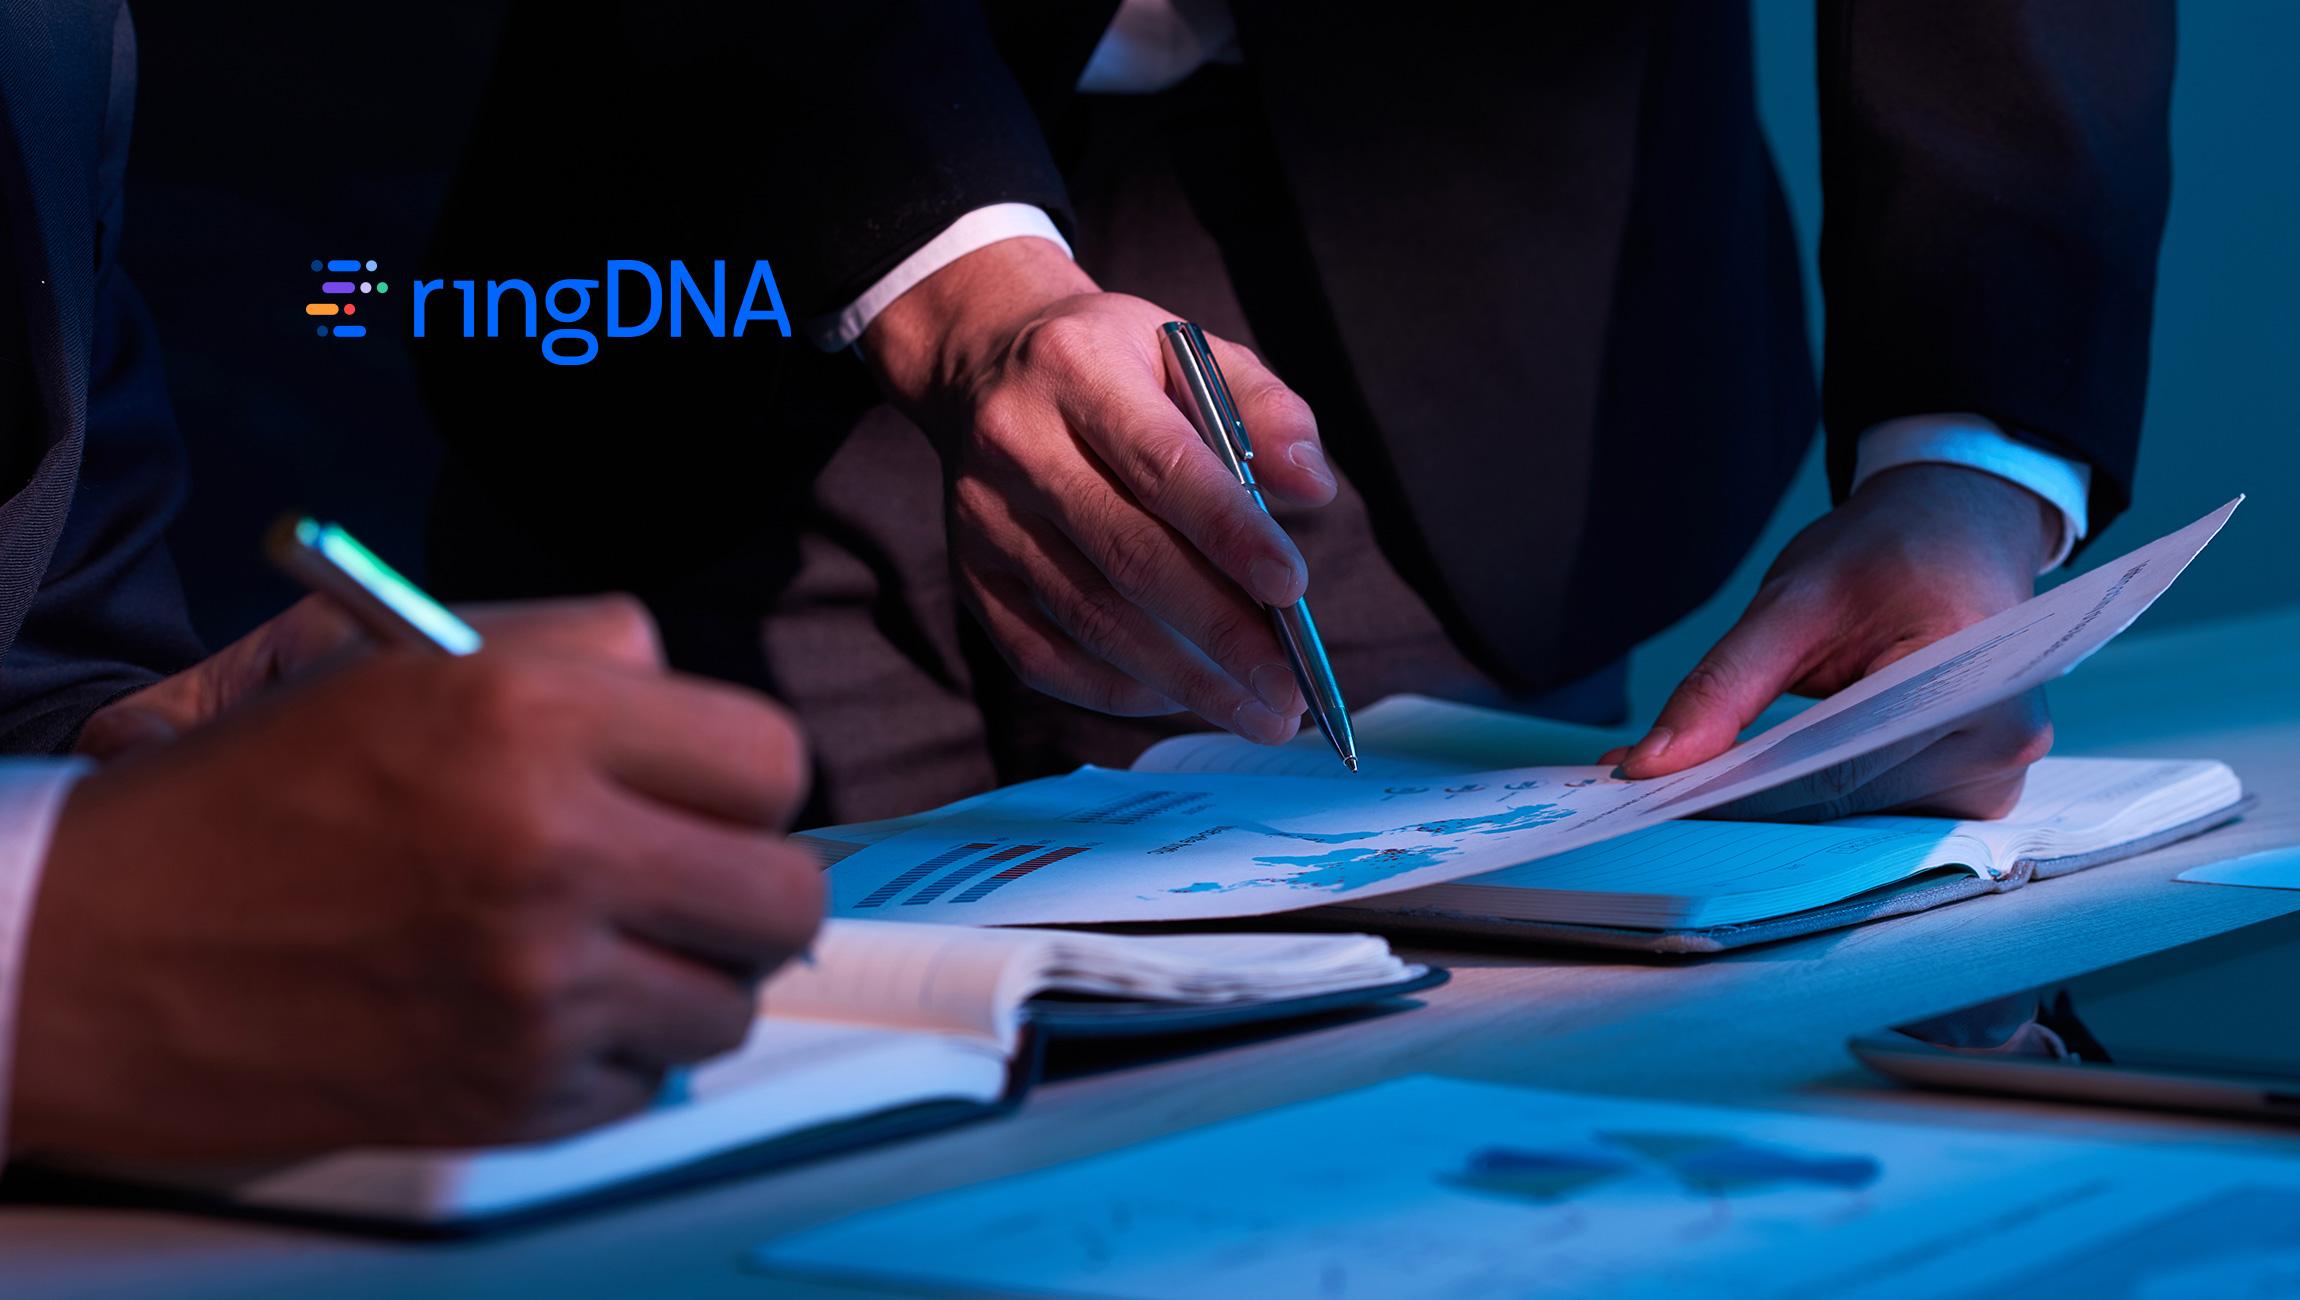 ringDNA Expands its Suite of Sales Engagement Solutions with the Addition of AI-Powered Sales Coaching